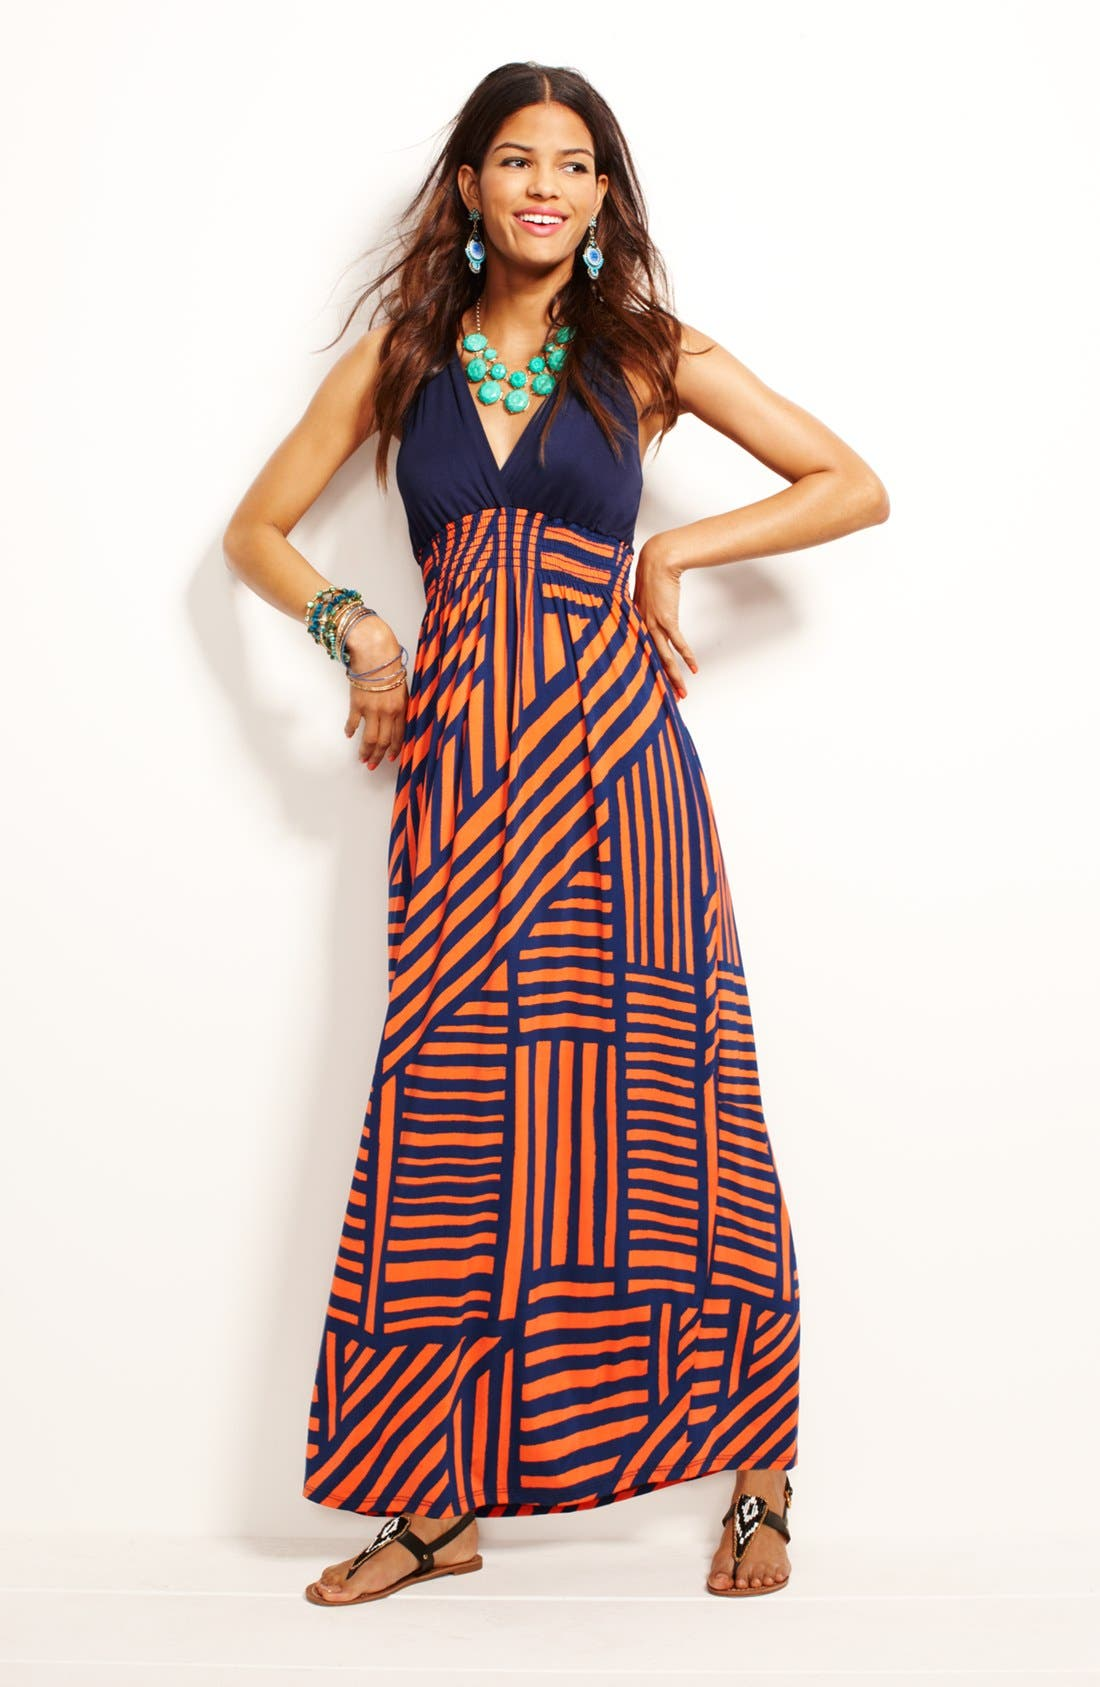 Alternate Image 1 Selected - FELICITY & COCO Maxi Dress & Accessories